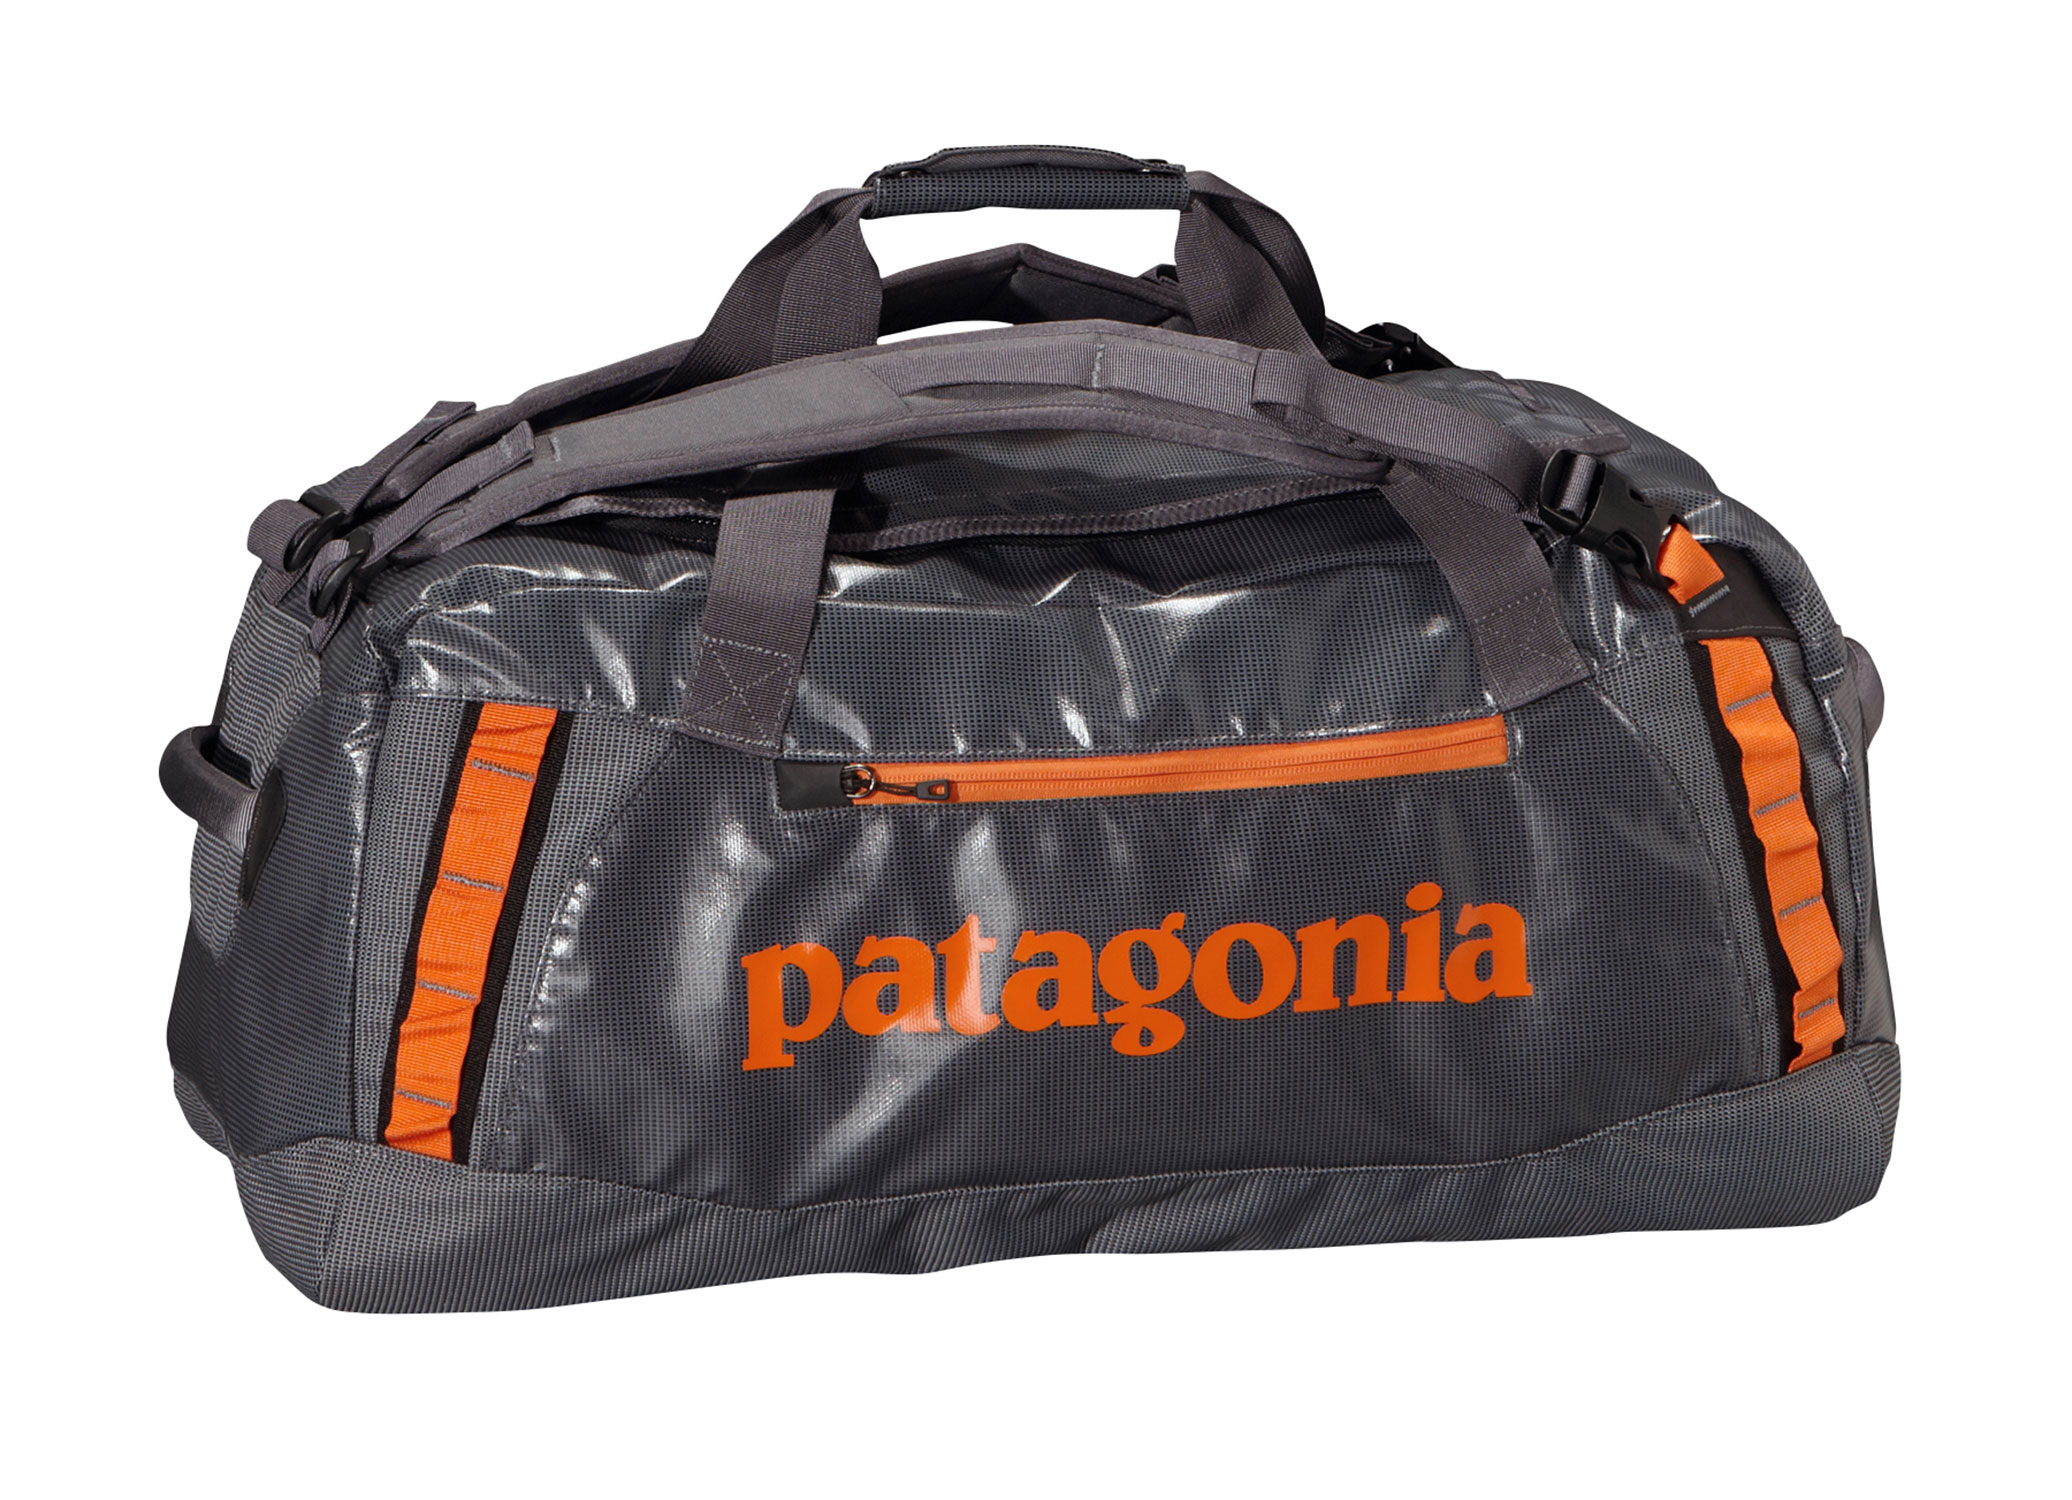 Entertainment A highly water-resistant and super-durable duffel designed to carry your gear to faraway places. FABRIC: 14.7-oz 1,200-denier polyester (50% solution-dyed) with a TPU-film laminate and a DWR (durable water repellent) finishKey Features of the Patagonia Hole 60L Duffle Bag Black: Waterproof fabric with sewn seams protects your gear in wet conditions Carry with handle or haul handles; four corner-mounted webbing daisy chains facilitate hauling and tying down big loads U-shaped lid provides easy access to the main compartment; zippered exterior pocket; two zippered internal mesh pockets Bottom padded with foam to protect contents - $89.95